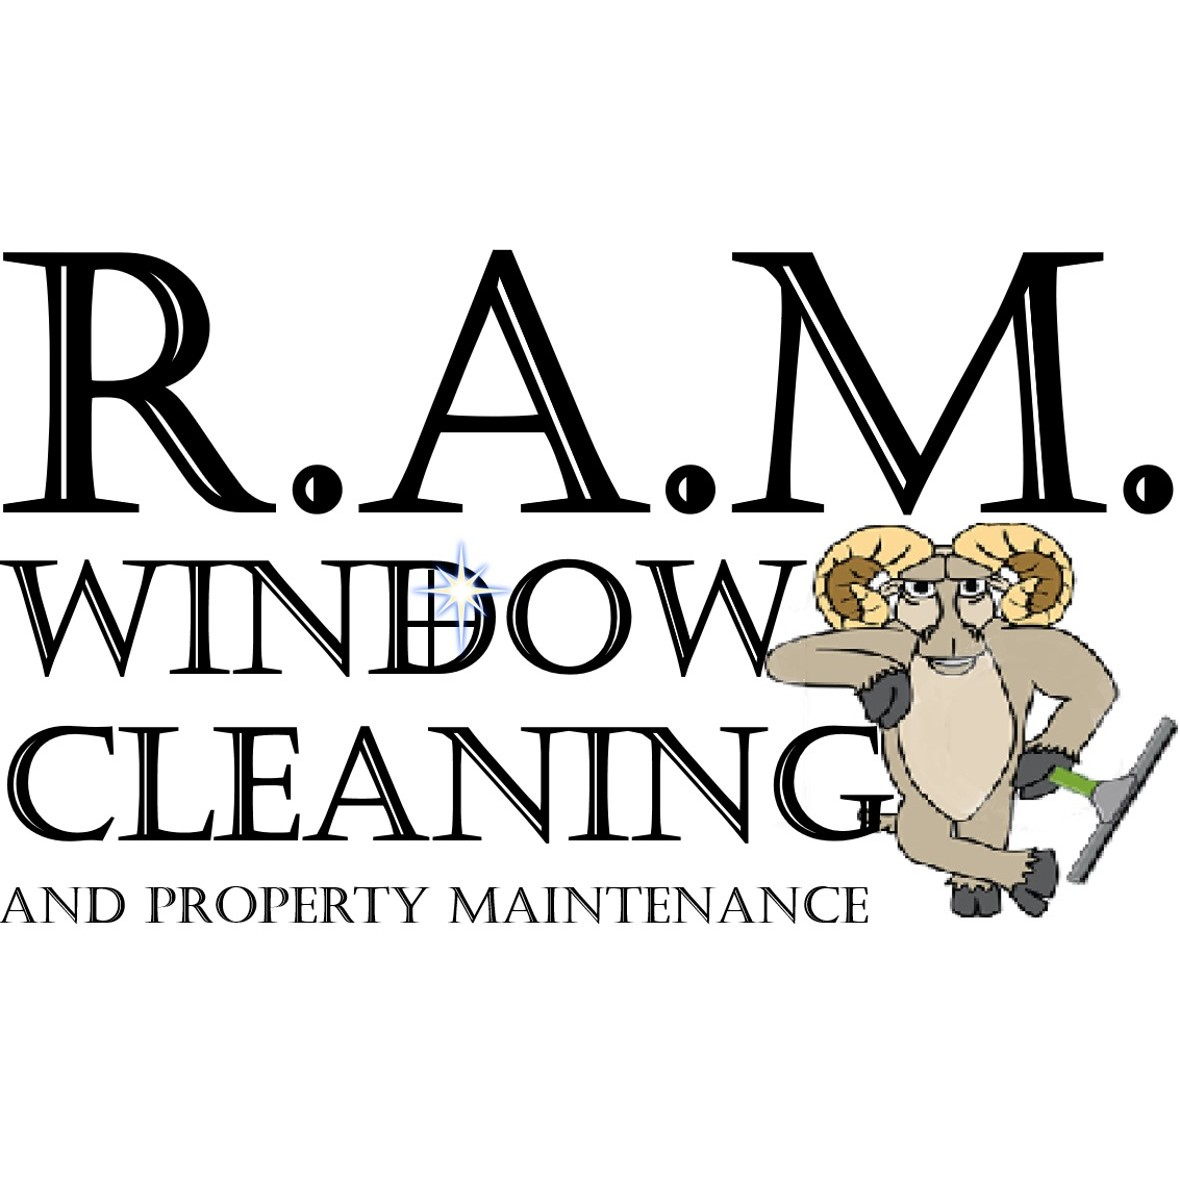 R.A.M. Window Cleaning and Property Maintenance image 2